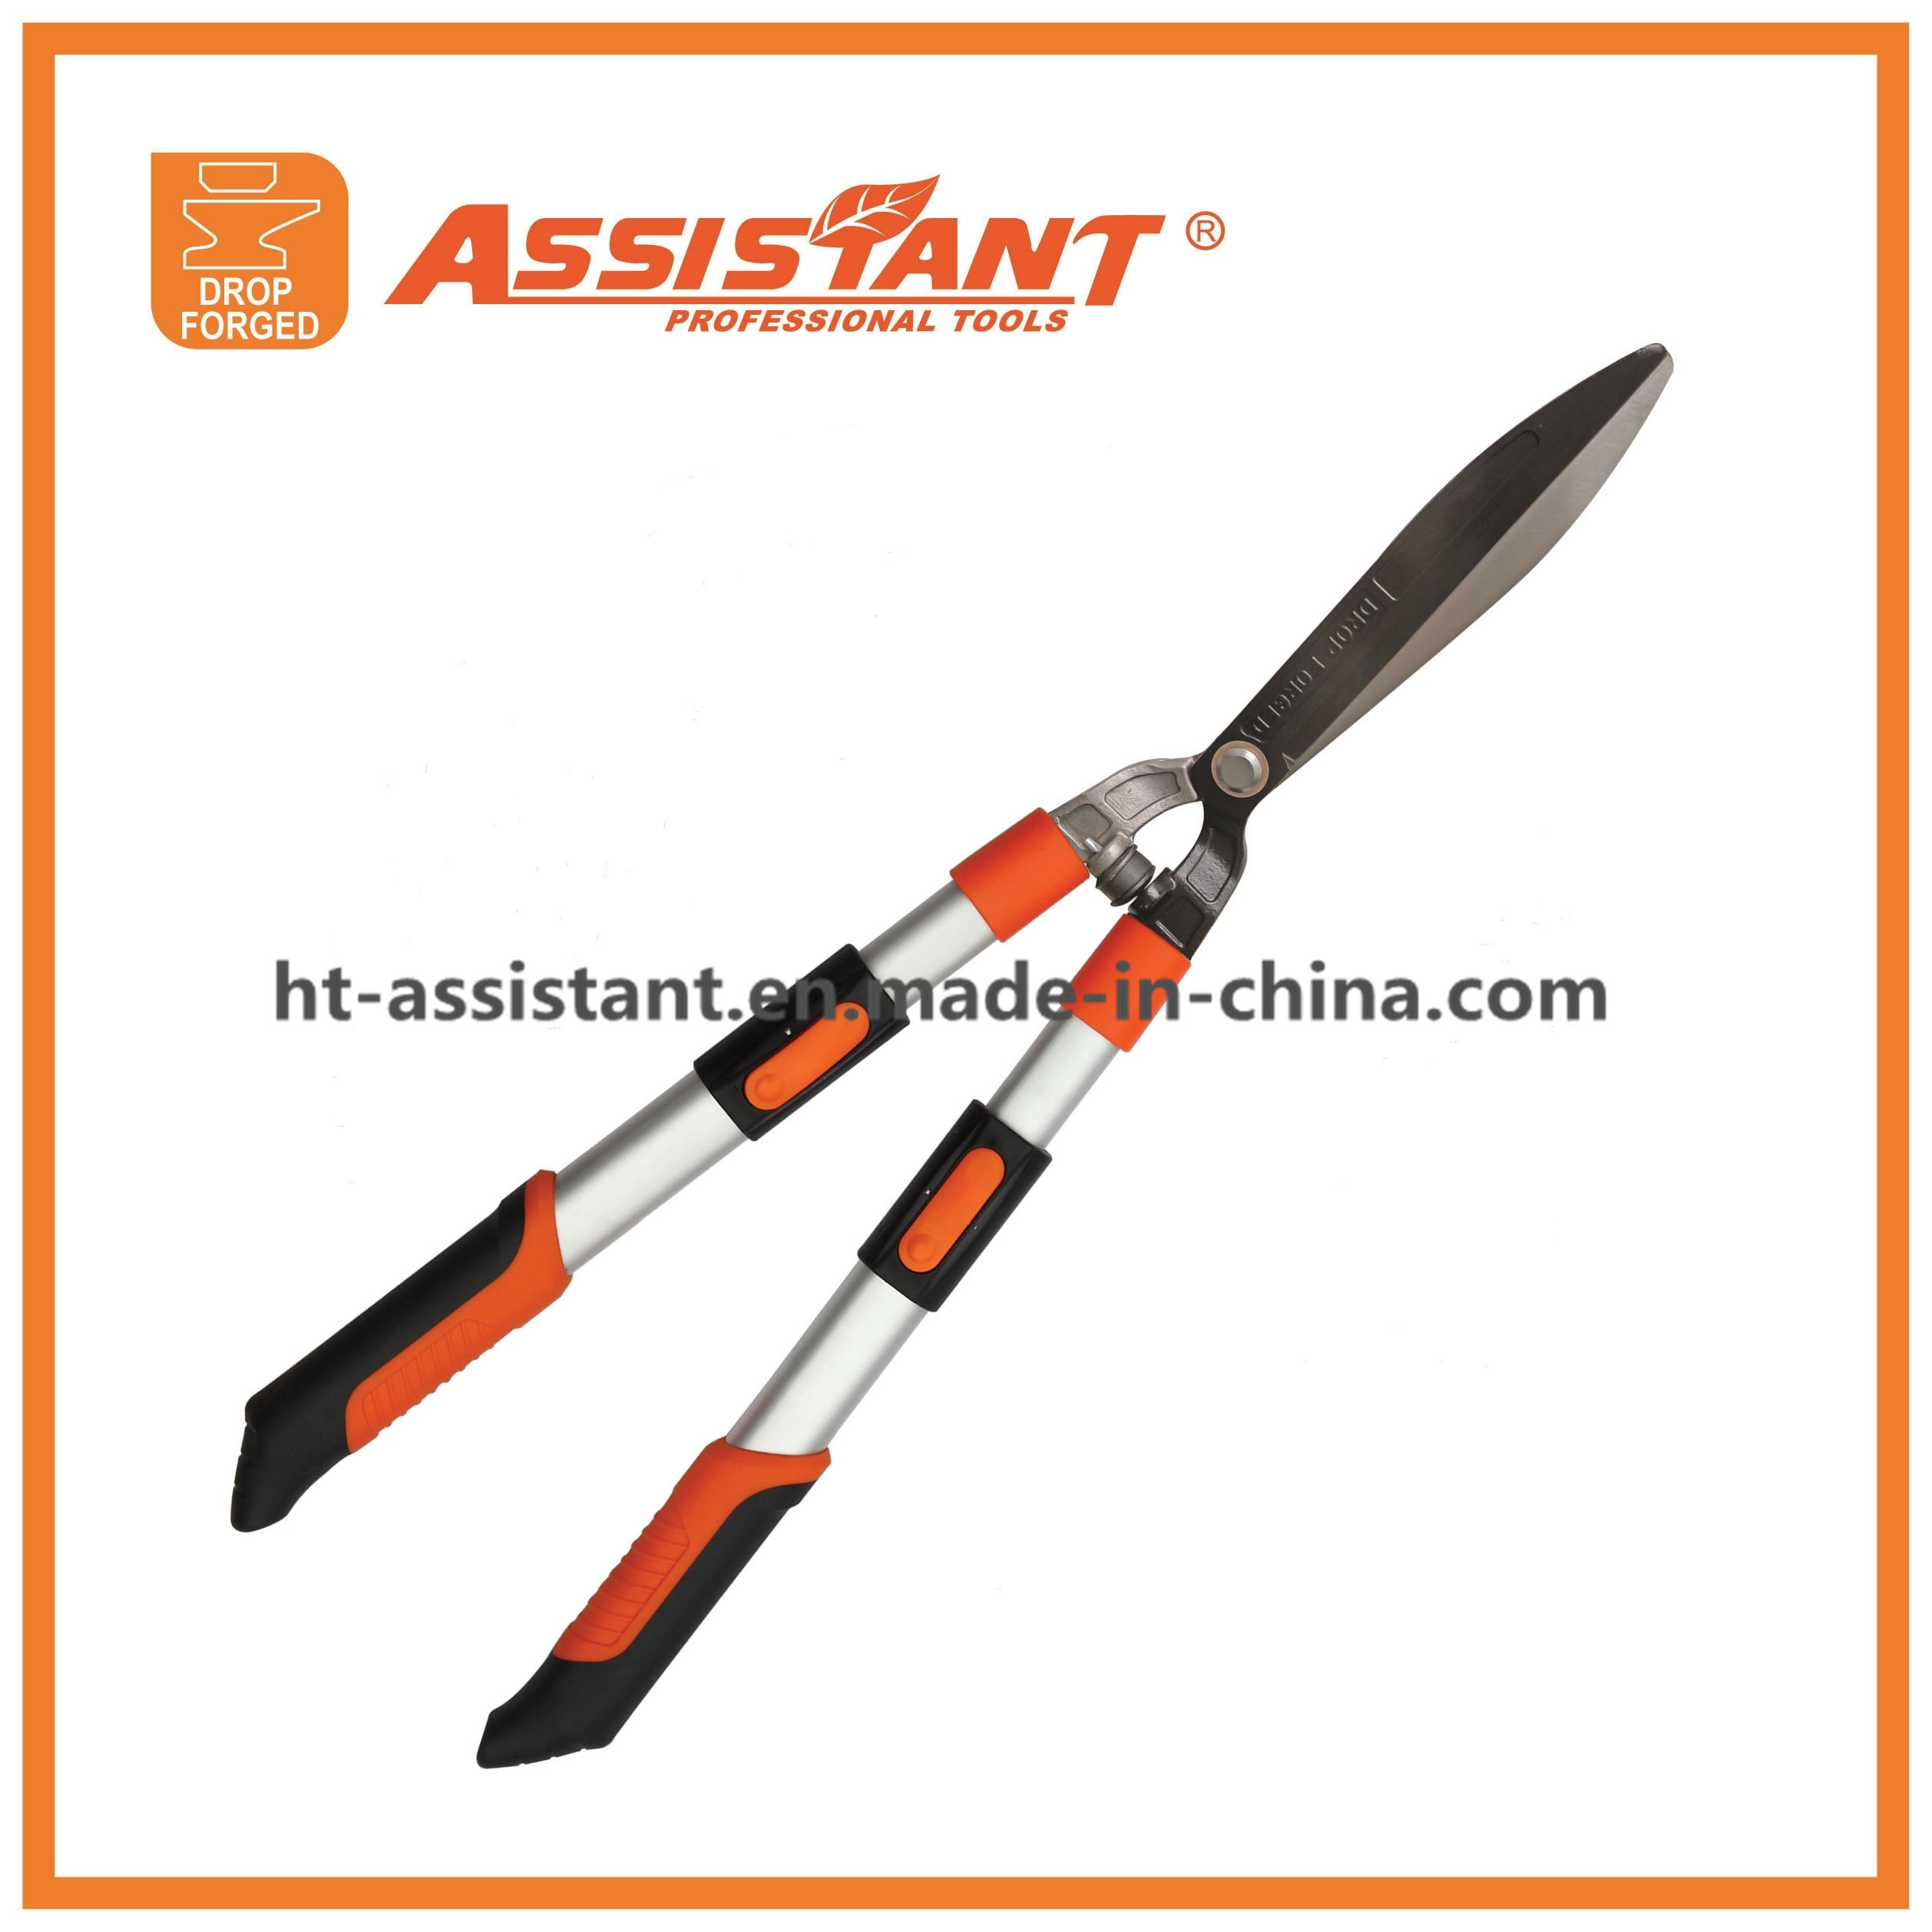 Garden Tools Lawn Branch Pruners Telescoping Drop Forged Hedge Shears